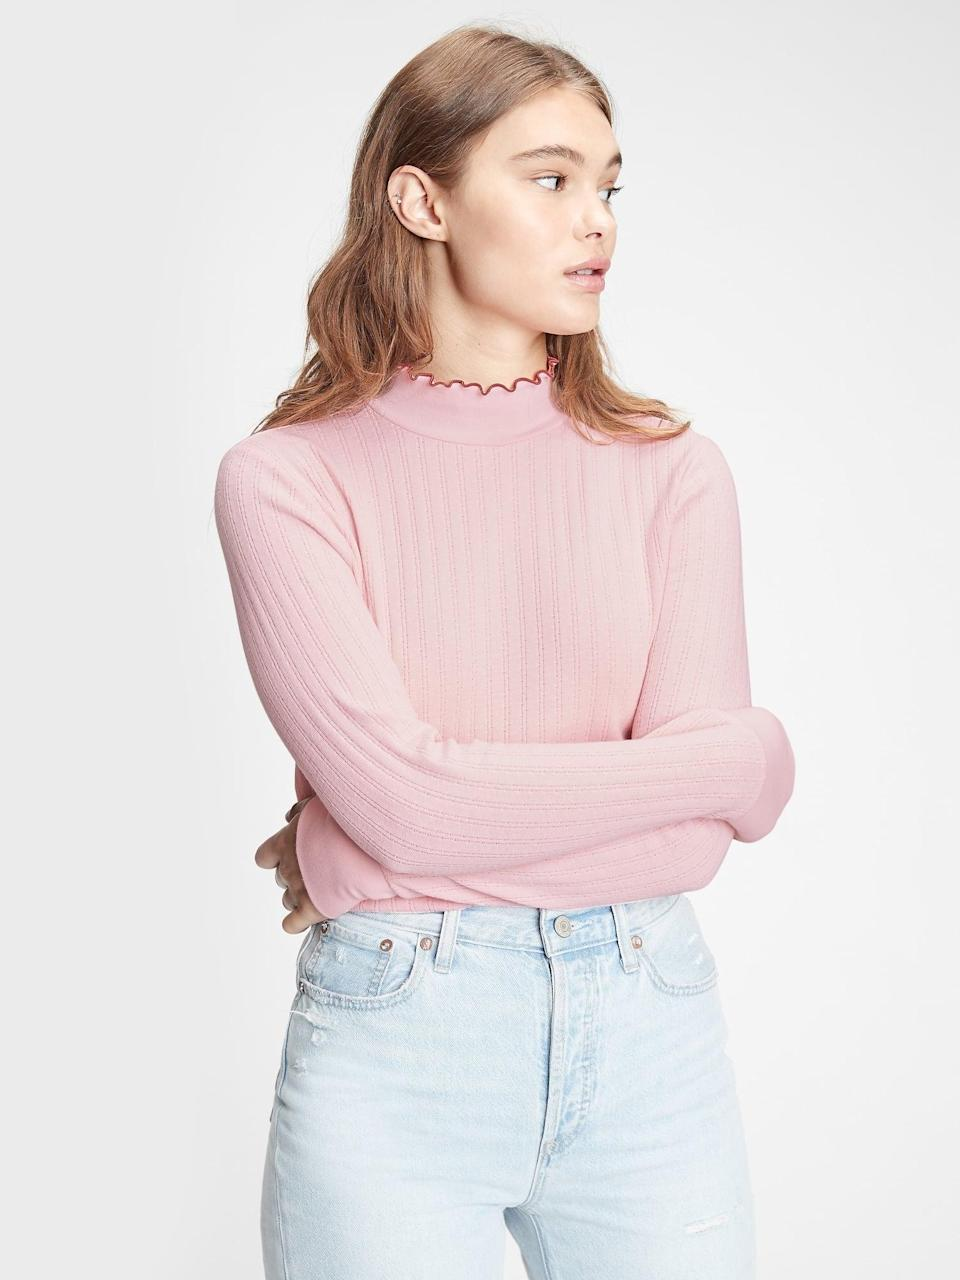 <p>This <span>Gap Pointelle Mockneck T-Shirt</span> ($29) is the perfect layering piece with the flourish at the neck. Pair with your favorite white sneakers and light denim jeans for a vintage vibe.</p>